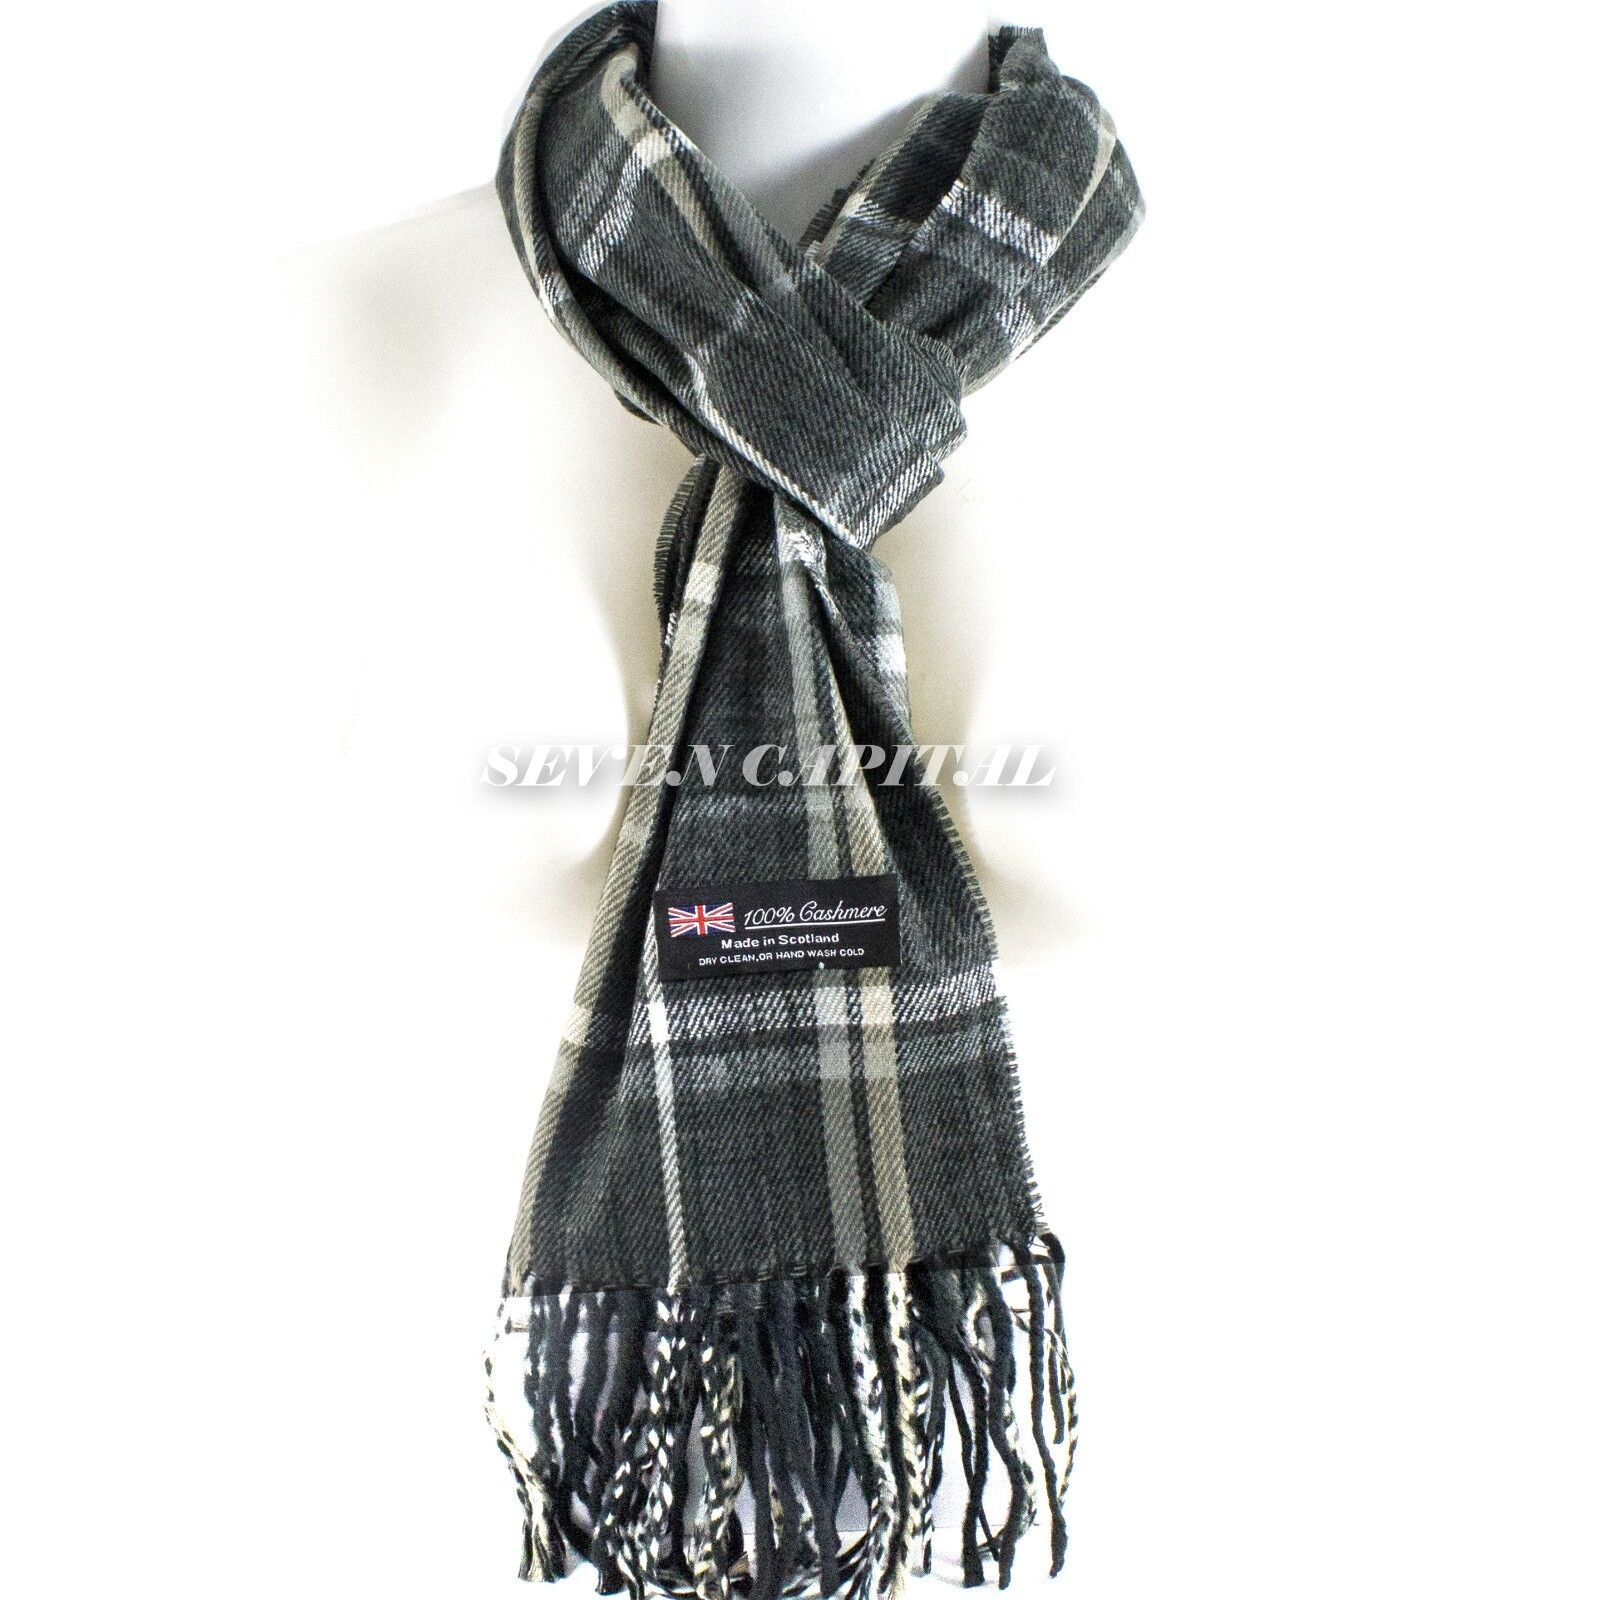 Mens Womens Winter Warm SCOTLAND Made 100% CASHMERE Scarf Scarves Plaid Wool 15. Plaid: Charcoal/Beige/White